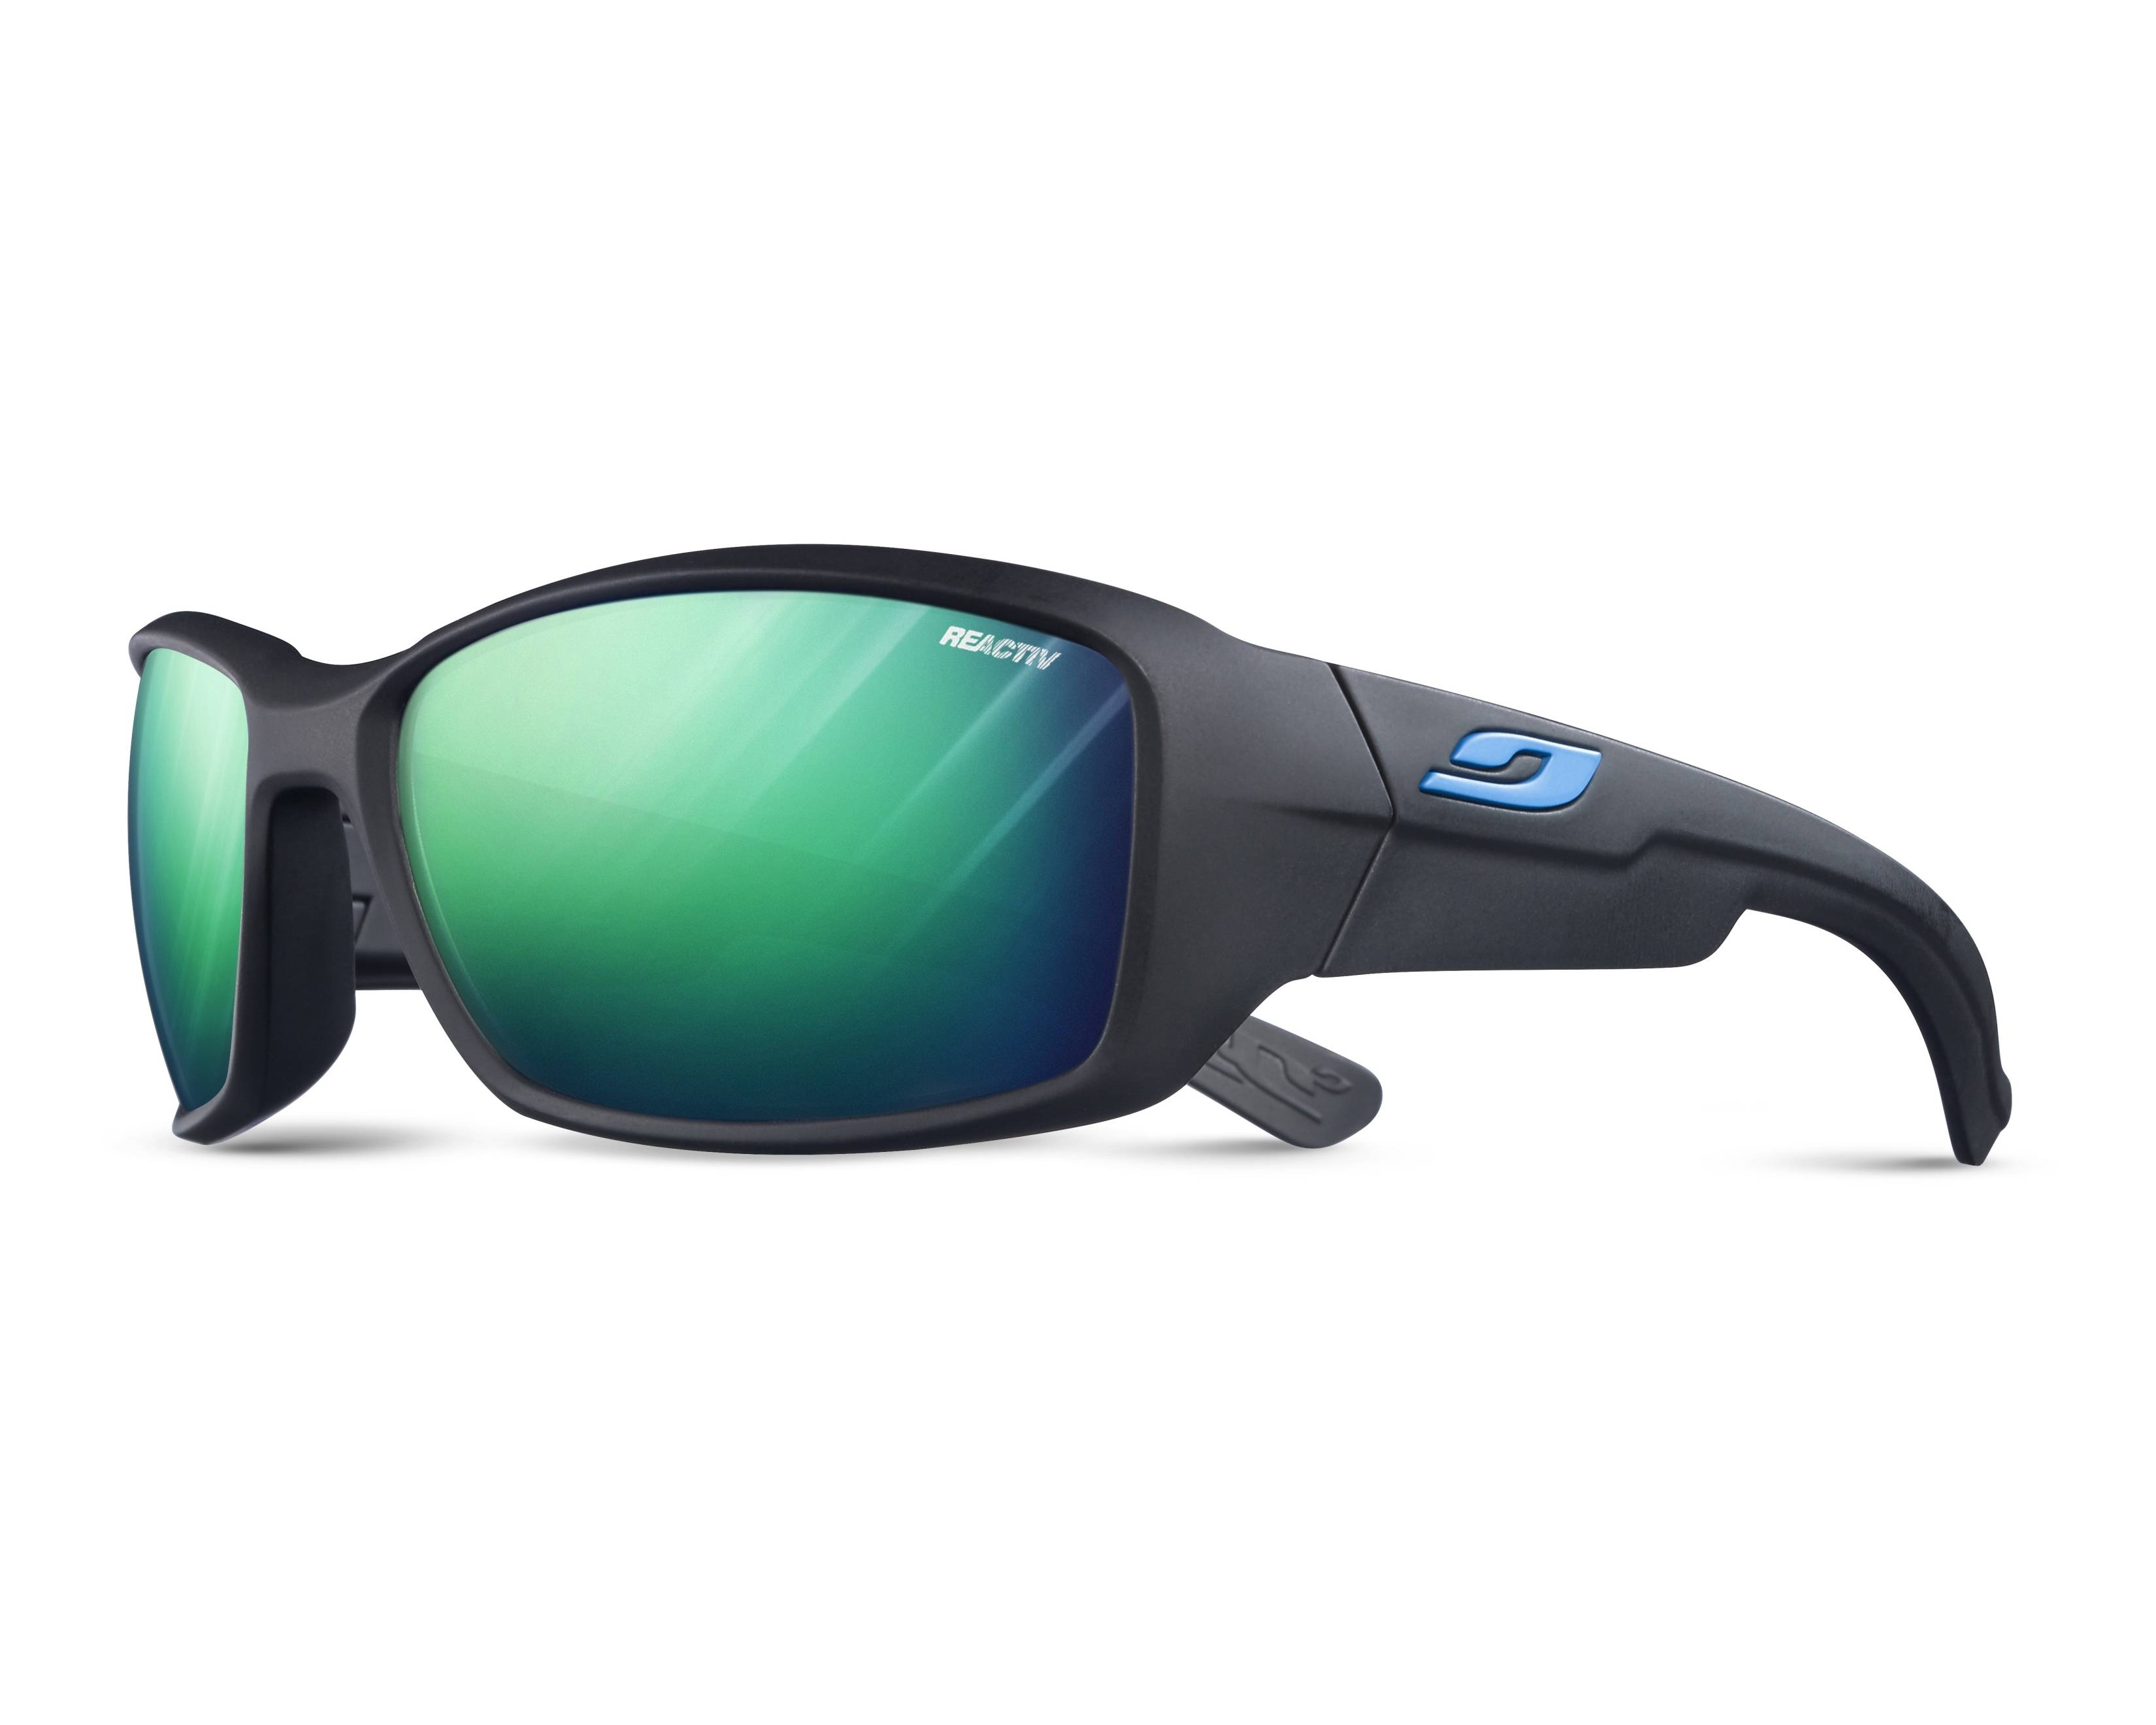 44cb6be9f7a Octopus Polarised Sunglasses - Bitterroot Public Library